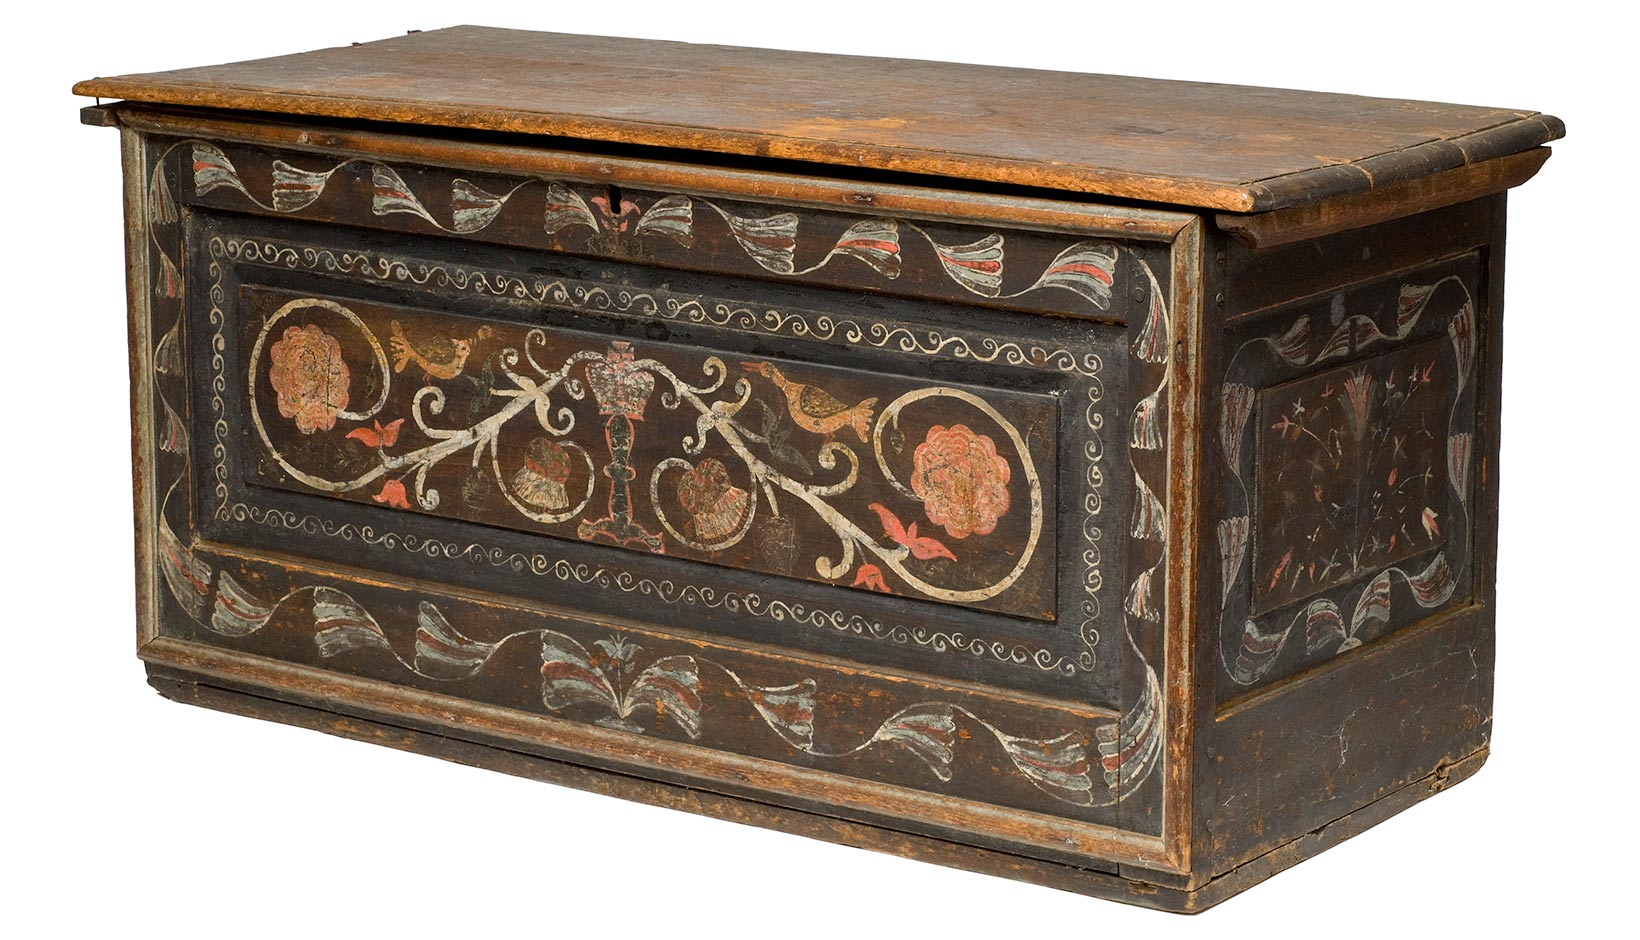 Gentil Between 1700 And 1740, A Small Group Of Craftsmen Created A Distinctive  Group Of Painted Wooden Chests In Saybrook And Guilford, Connecticut.